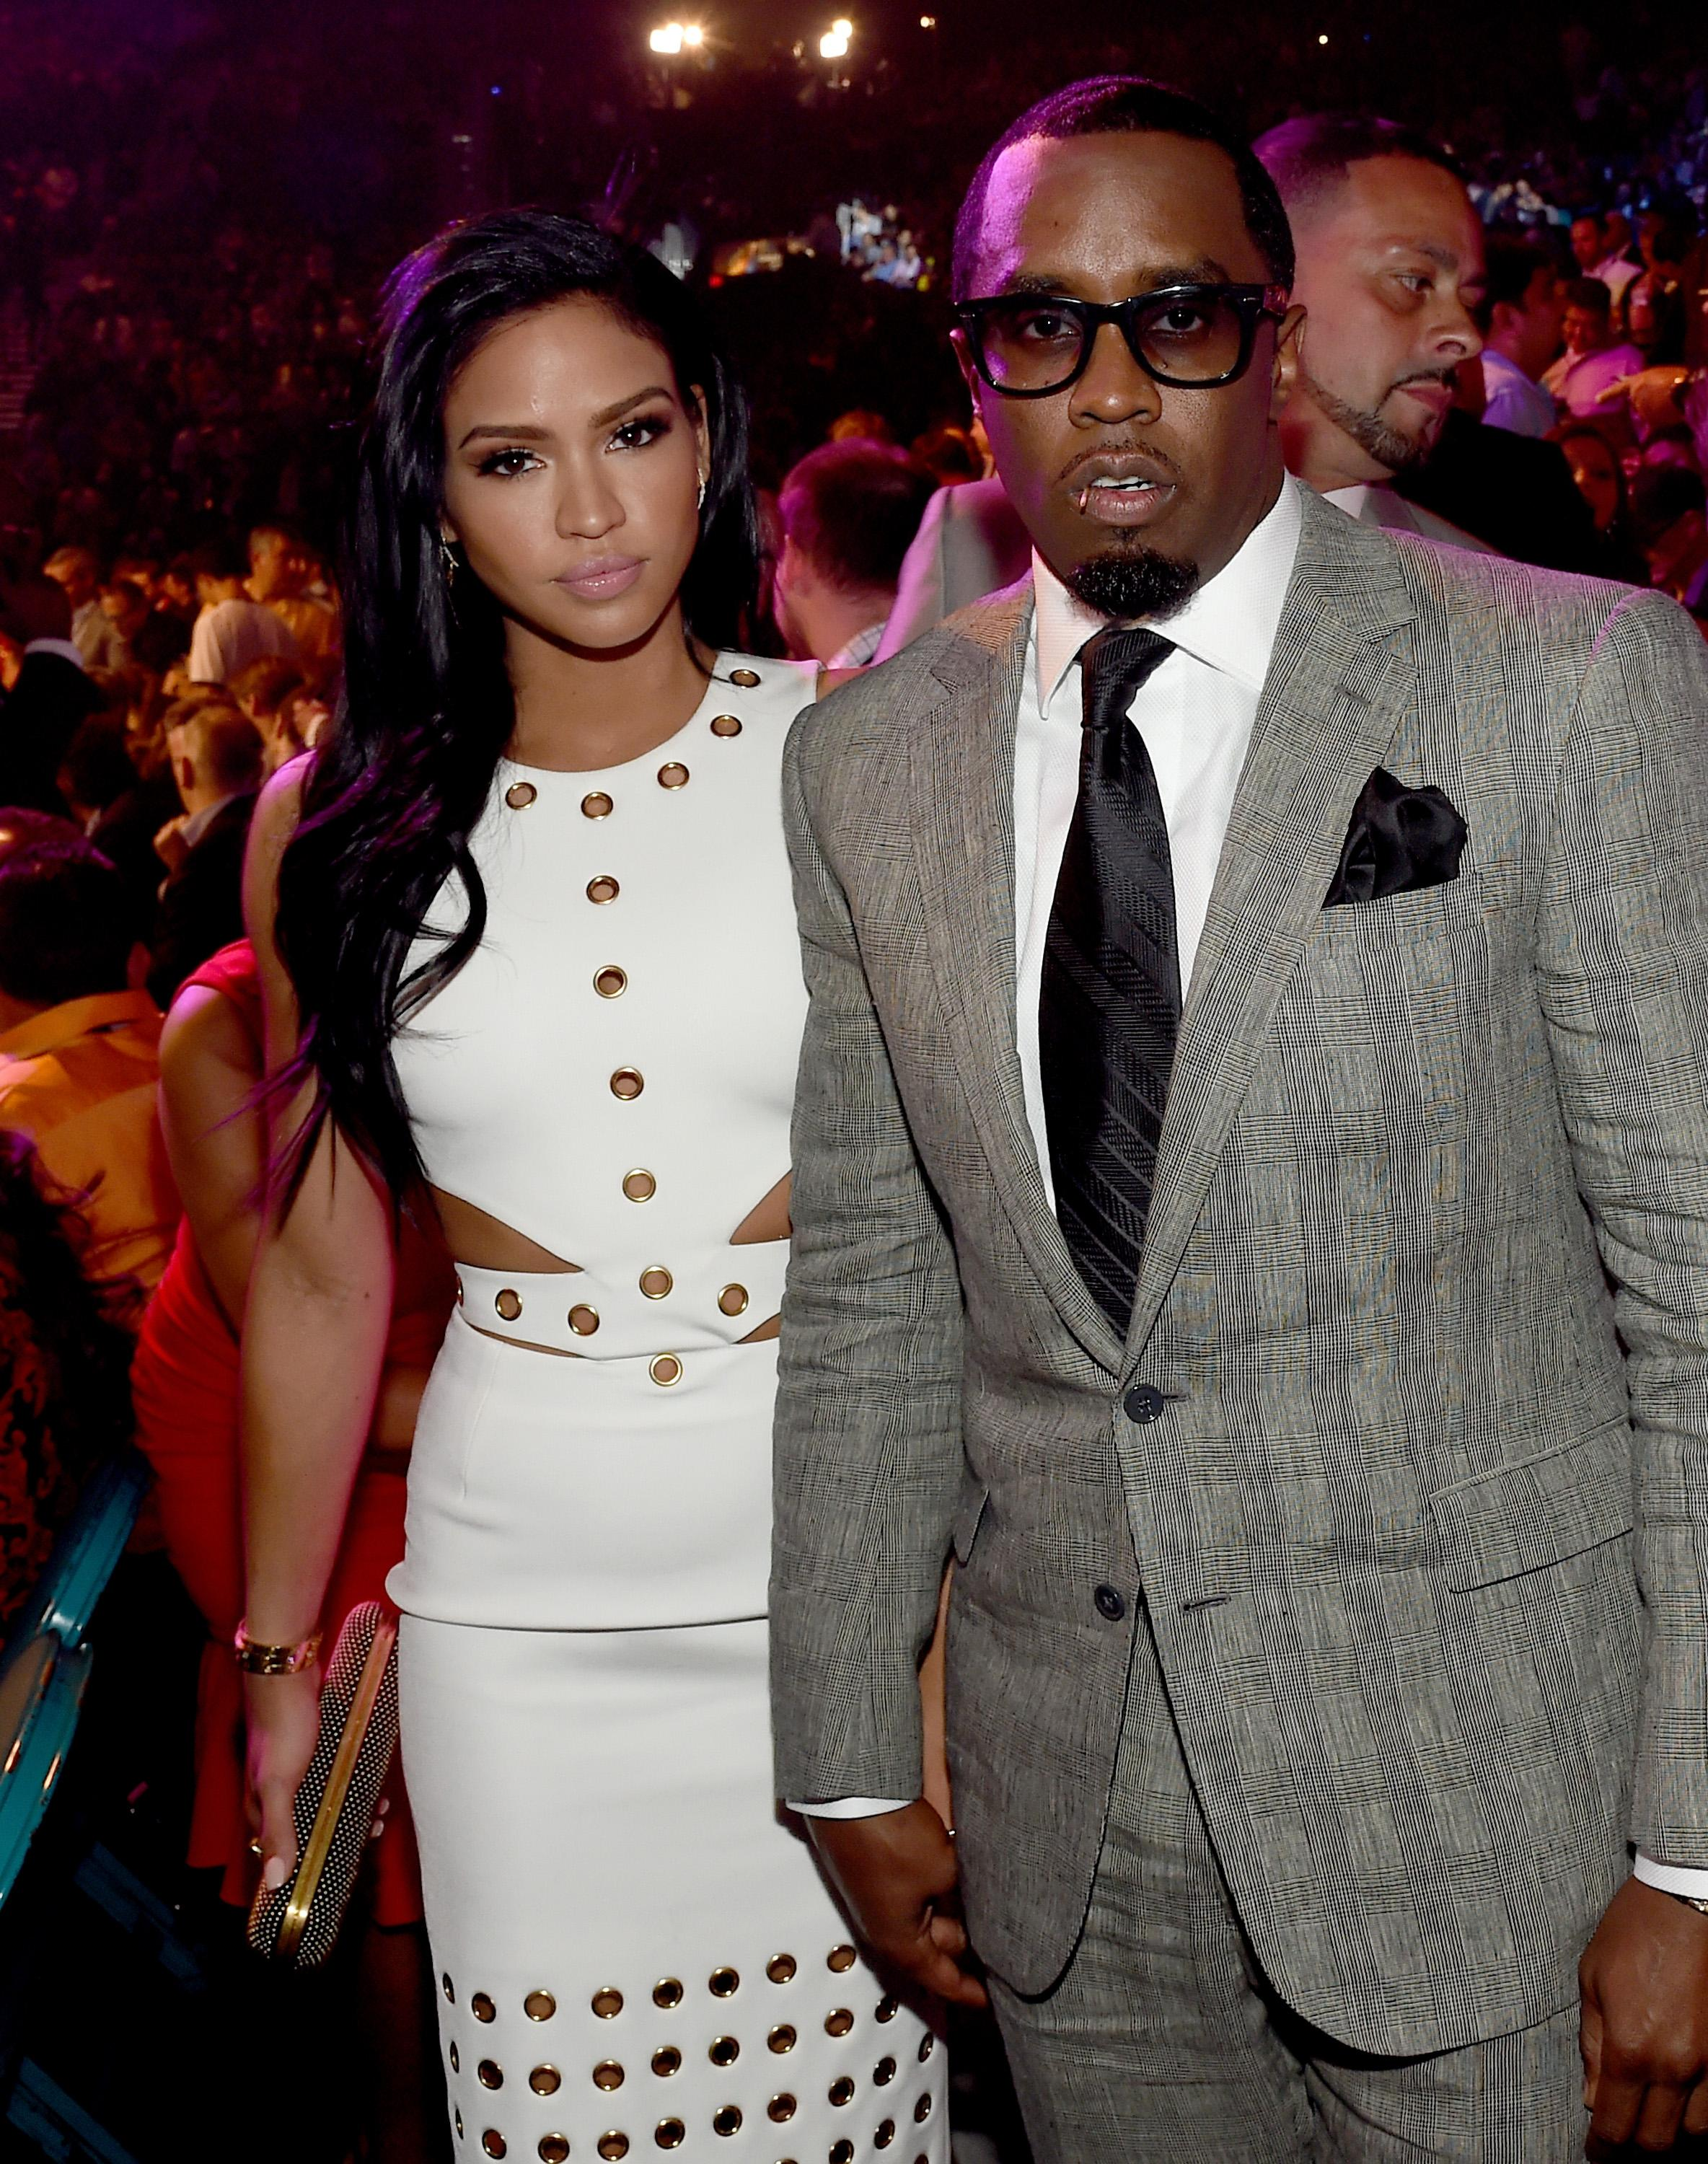 PHOTOS: Celebrities At The Mayweather vs. Pacquiao Fight ...